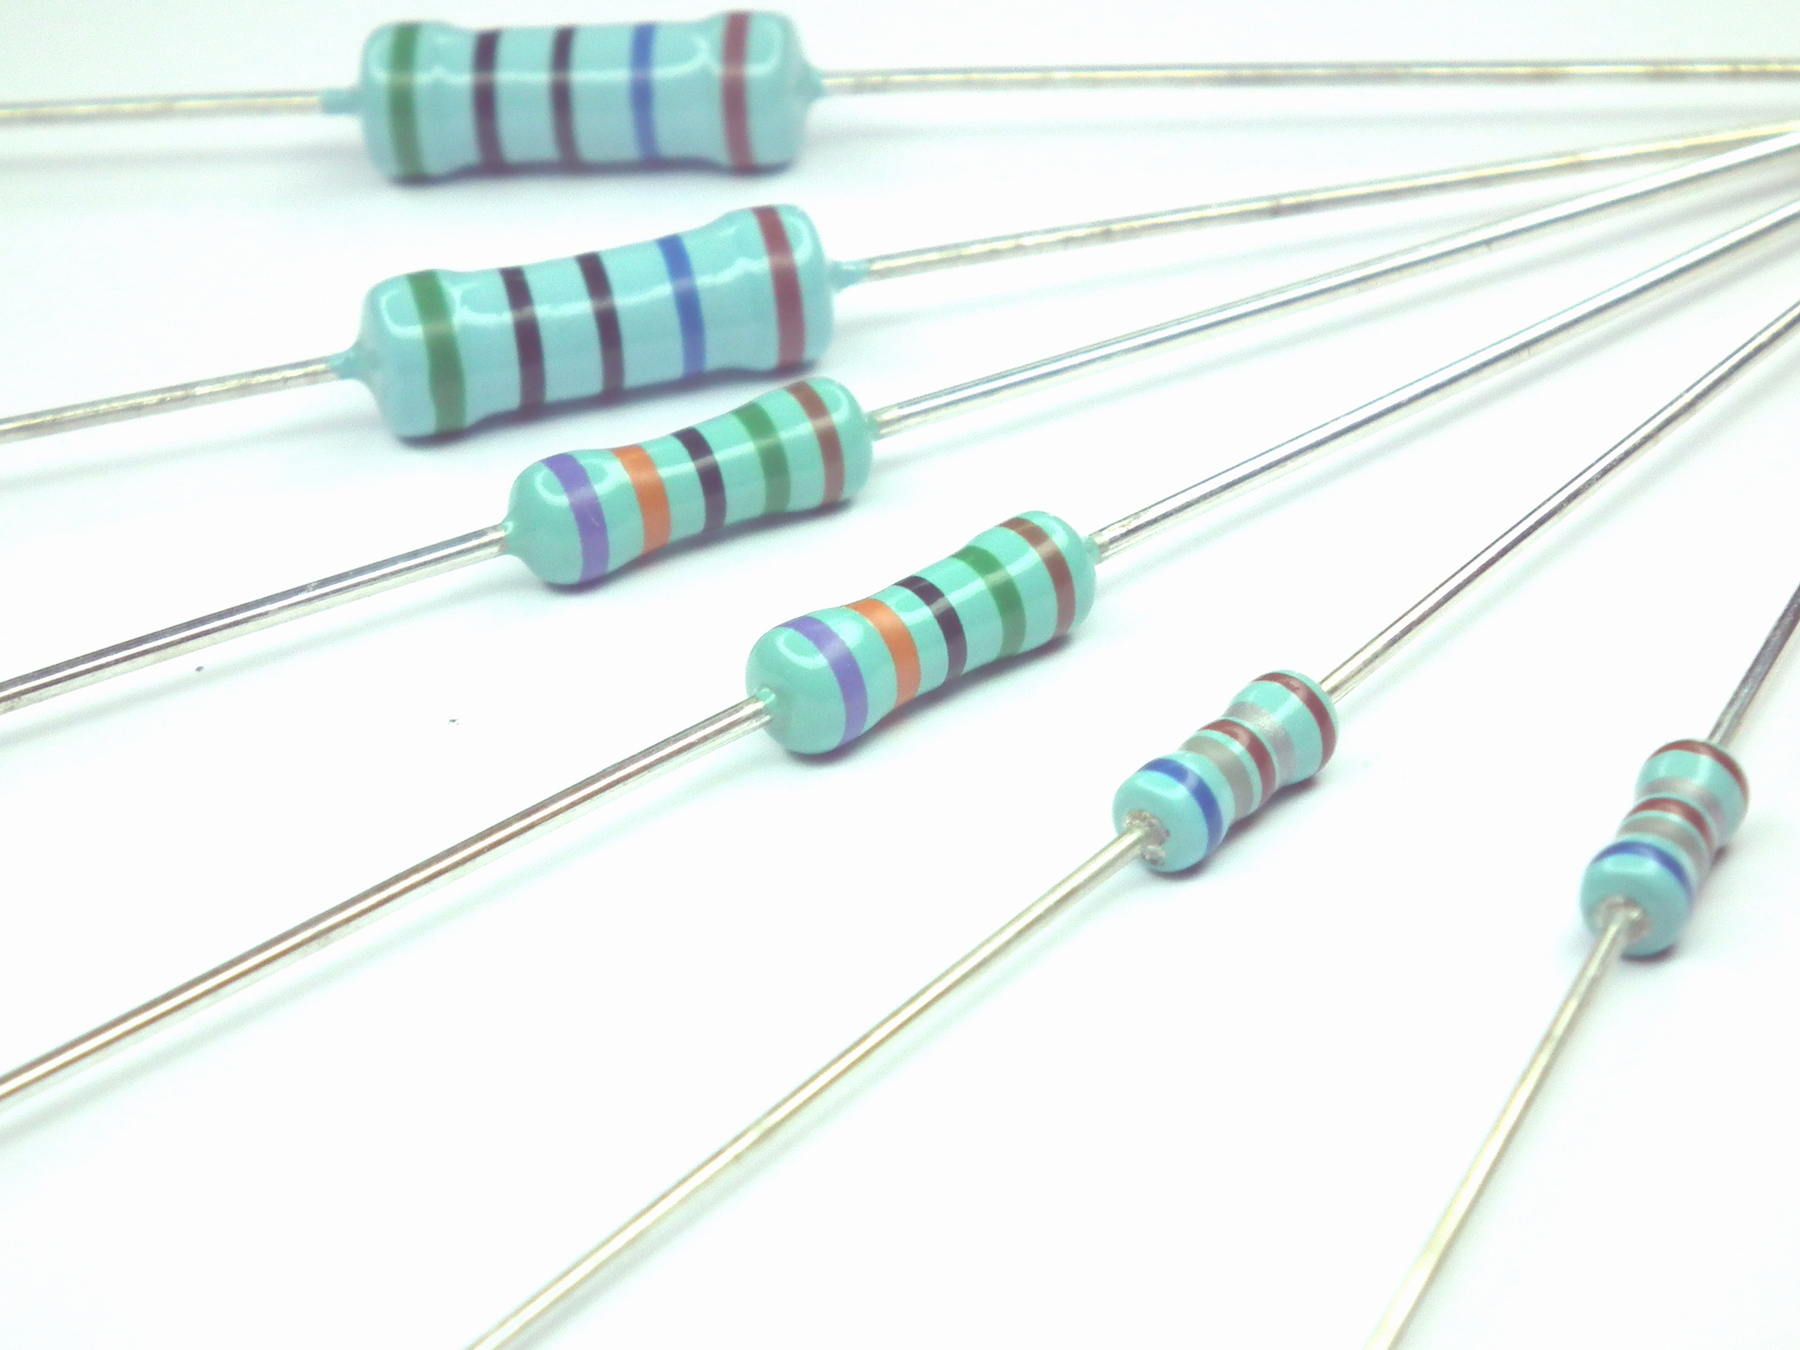 Thru-Hole Resistor Offers High Voltage Handling up to 8000V